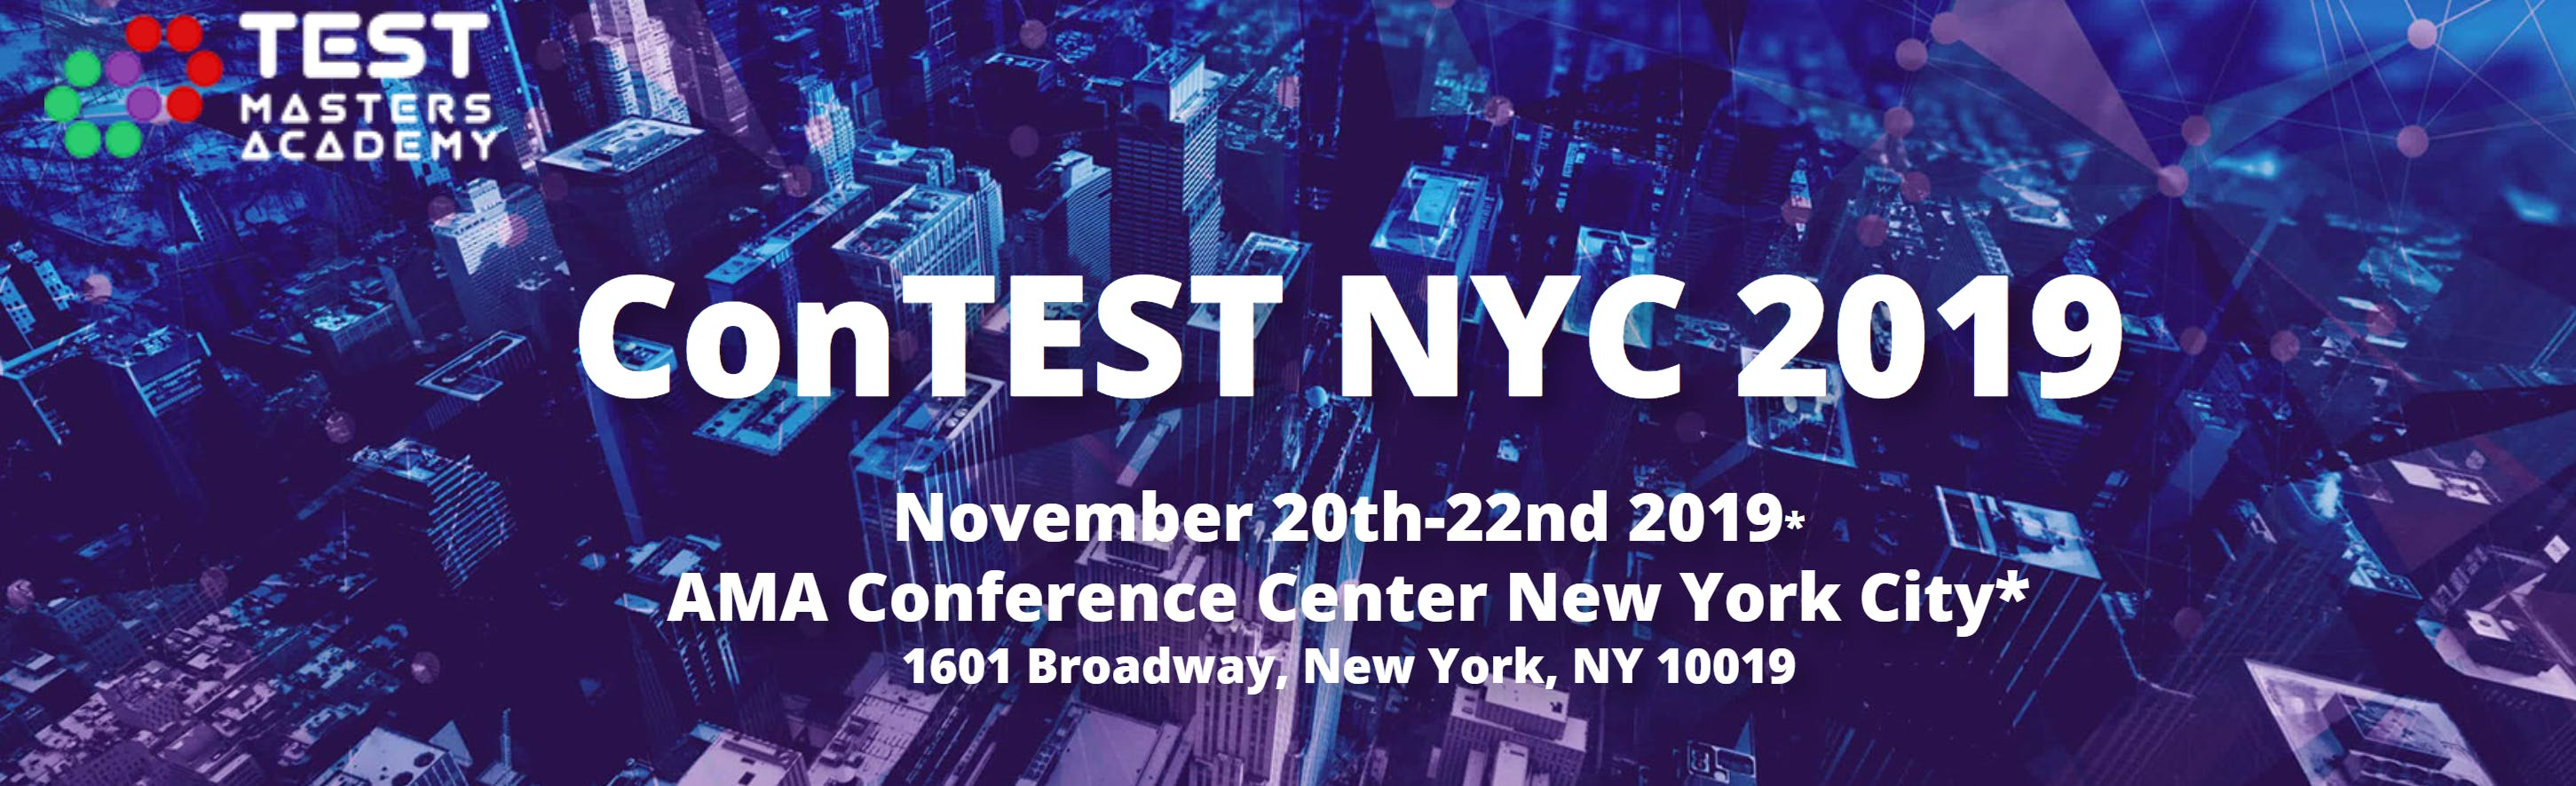 TestMasters ConTEST NYC 2019